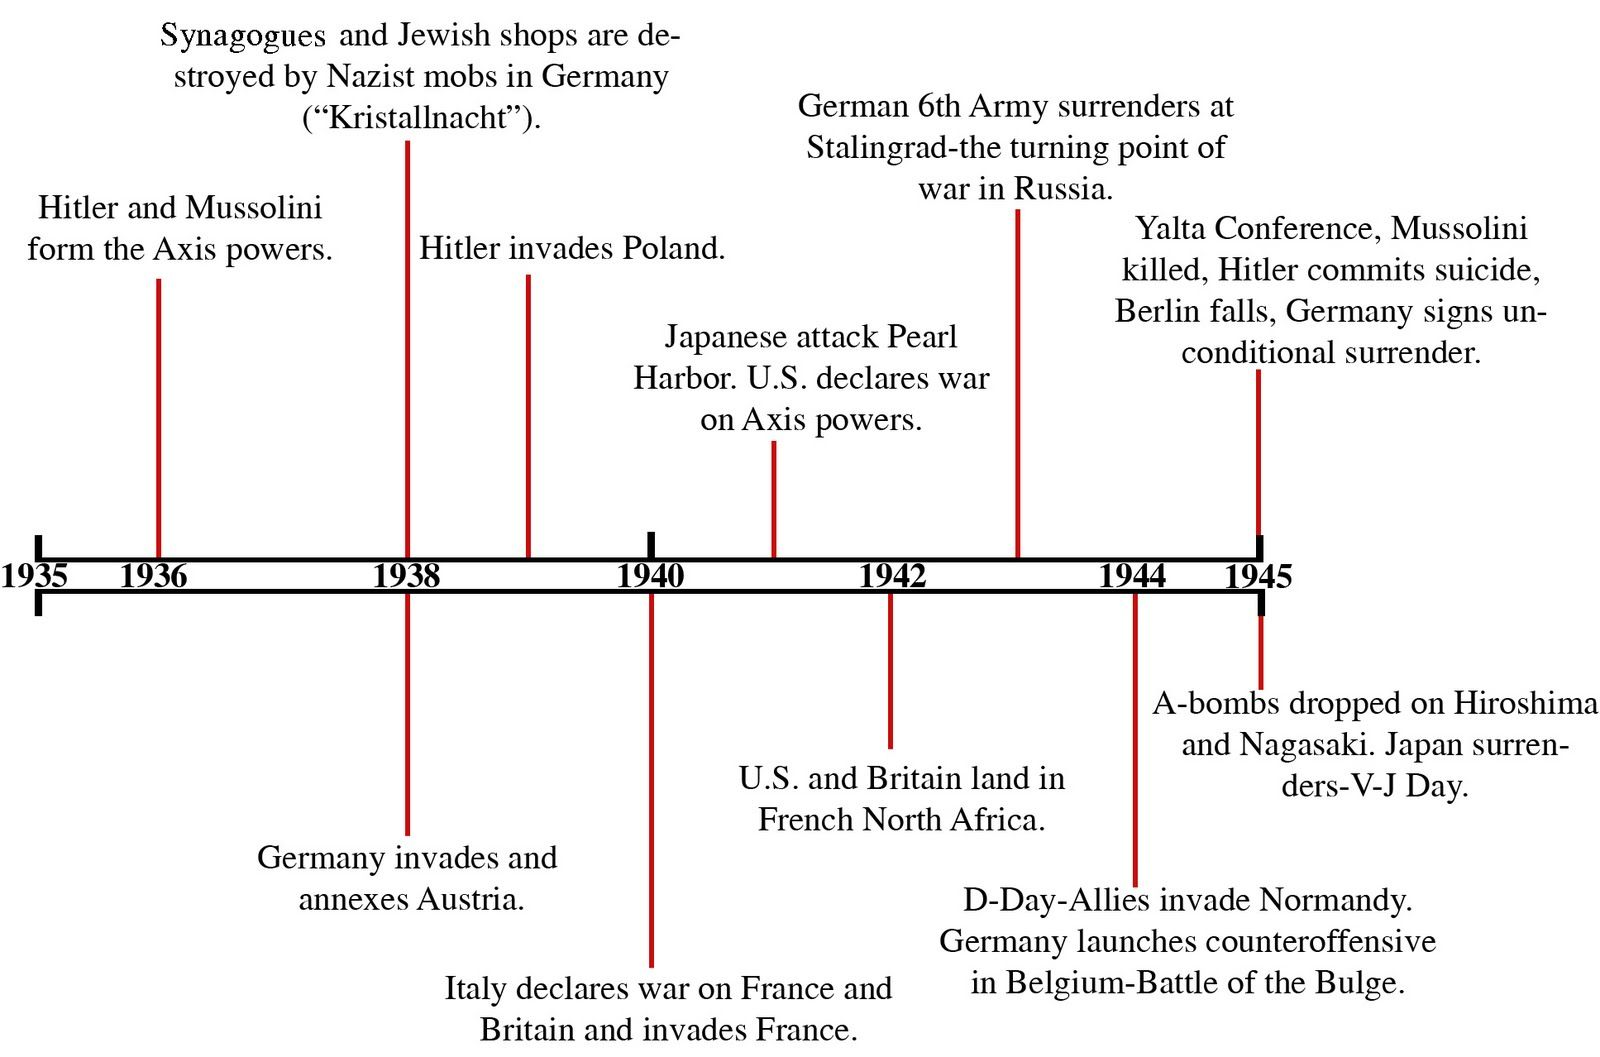 world history timeline major events pictures httpwallawycomworld history timeline major events pictures